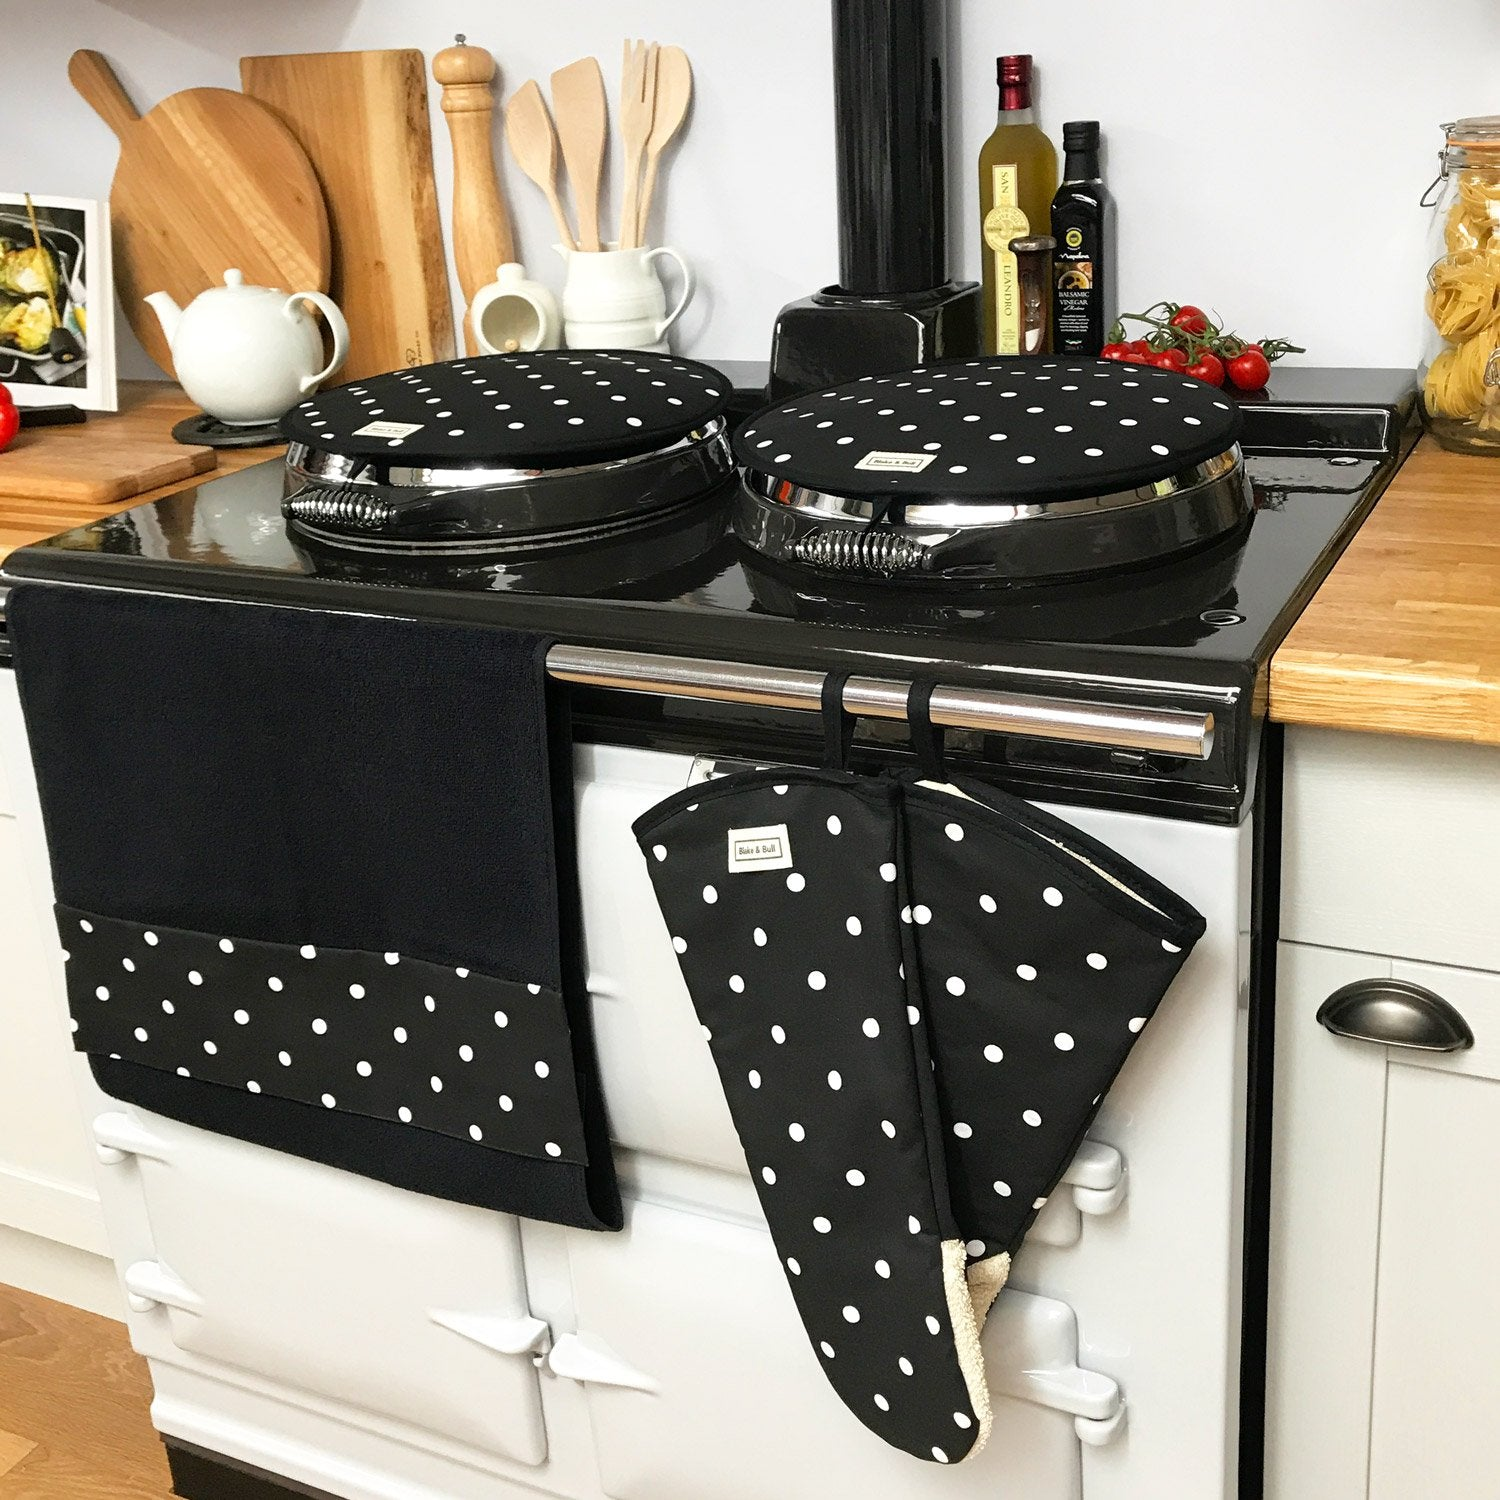 Dotty black hob covers for use with Aga range cookers